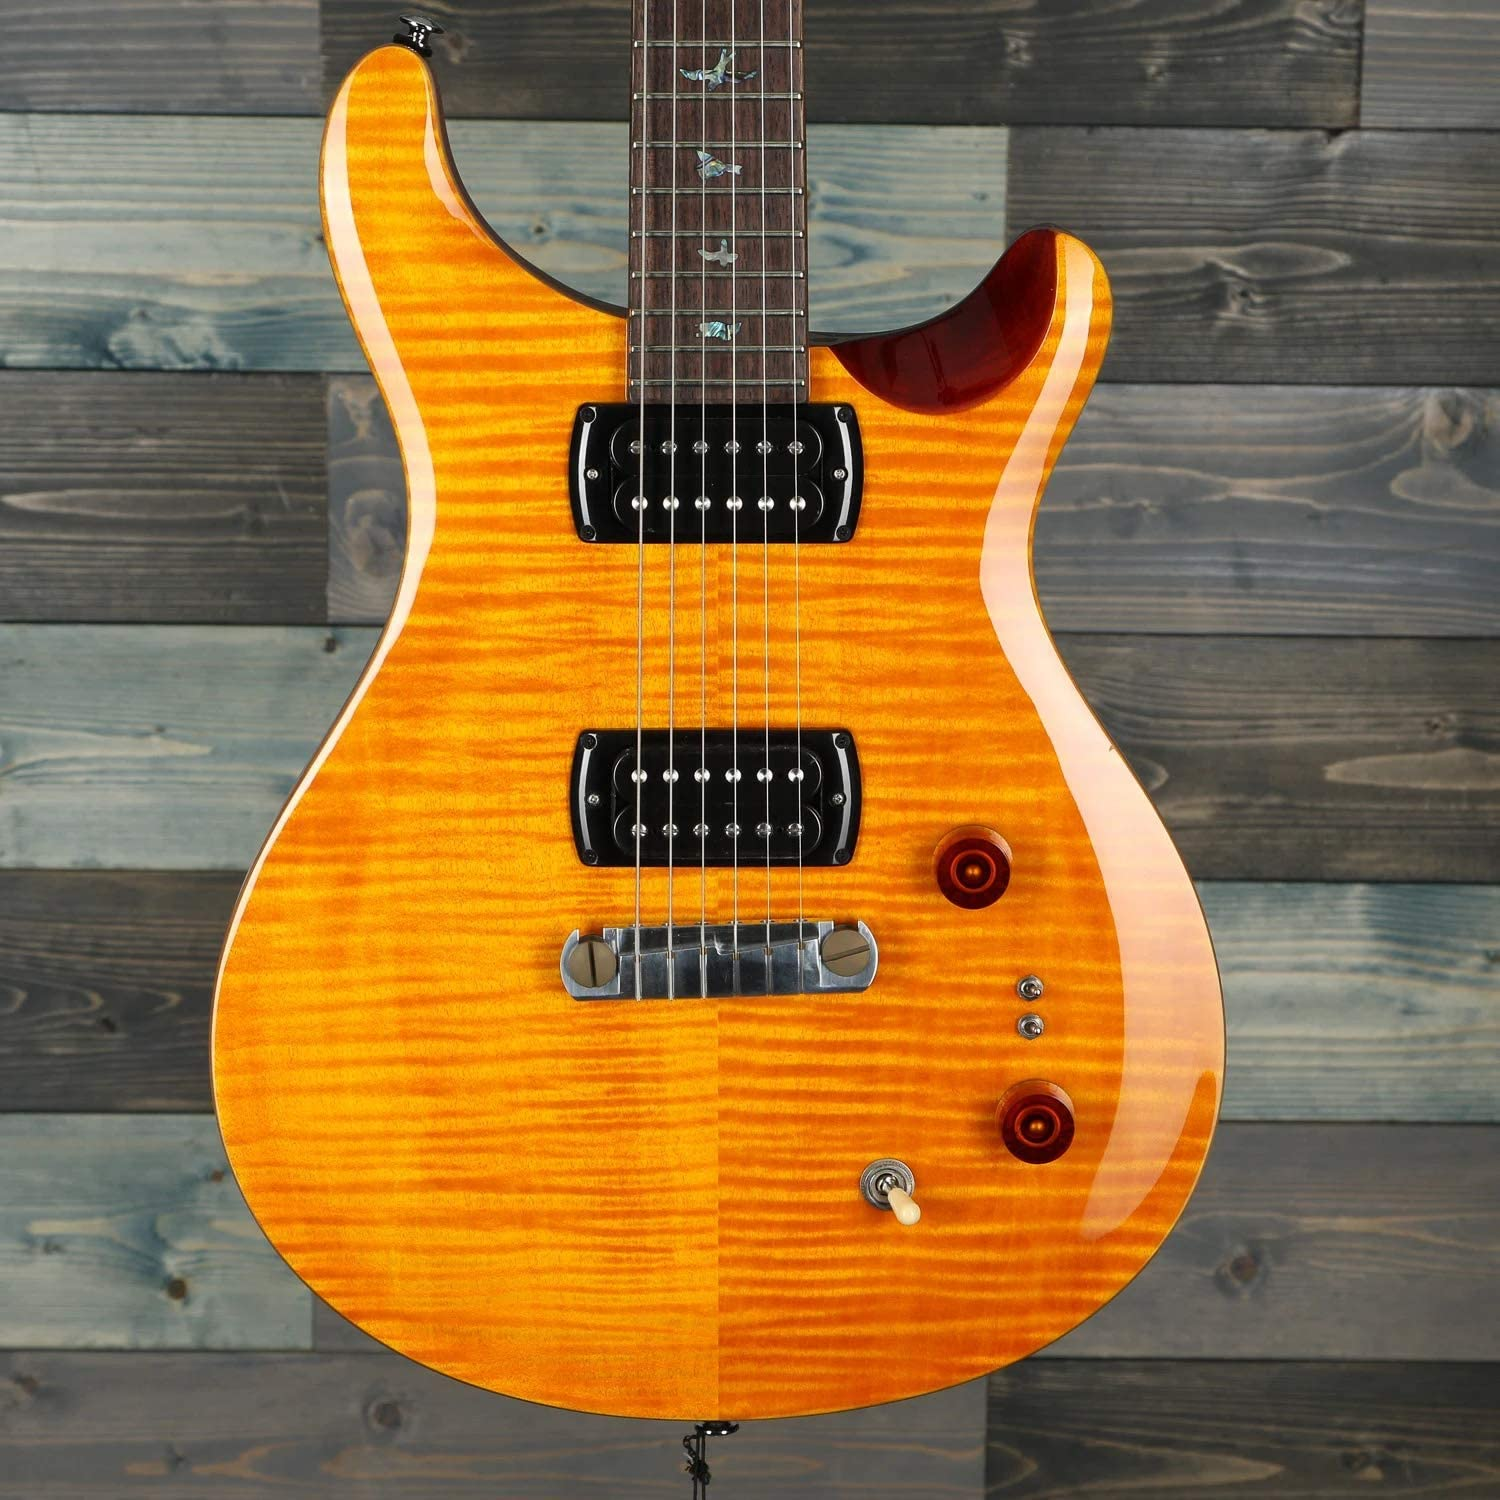 PRS SE Paul's Guitar Figured Maple Back Tobacco Amber Top Now free shipping w Gig Sales of SALE items from new works